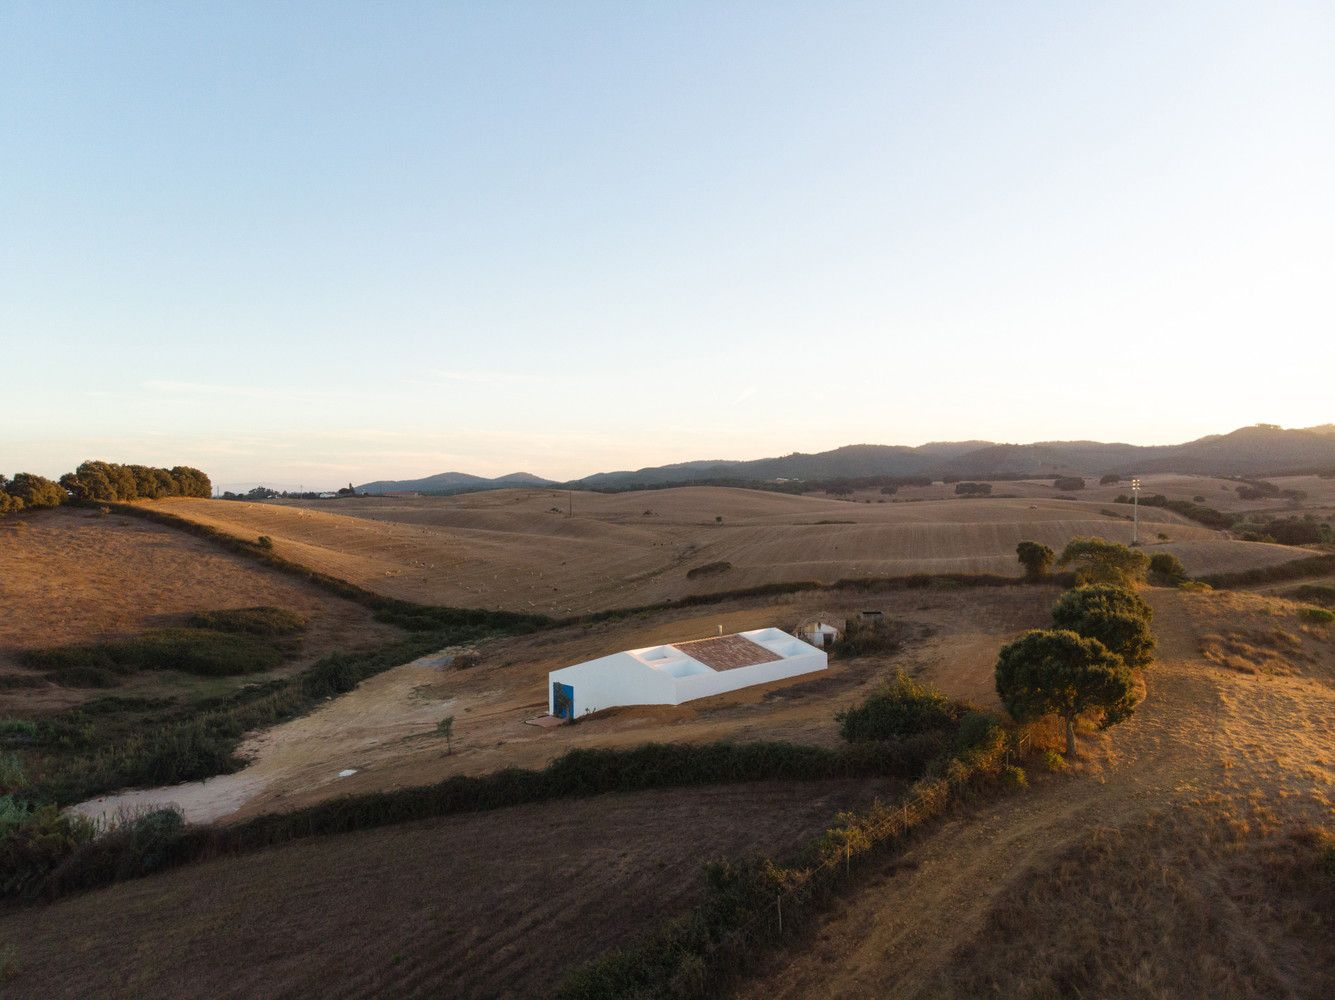 CERCAL HOUSE BY ATELIER DATA IN ALENTEJO, PORTUGAL